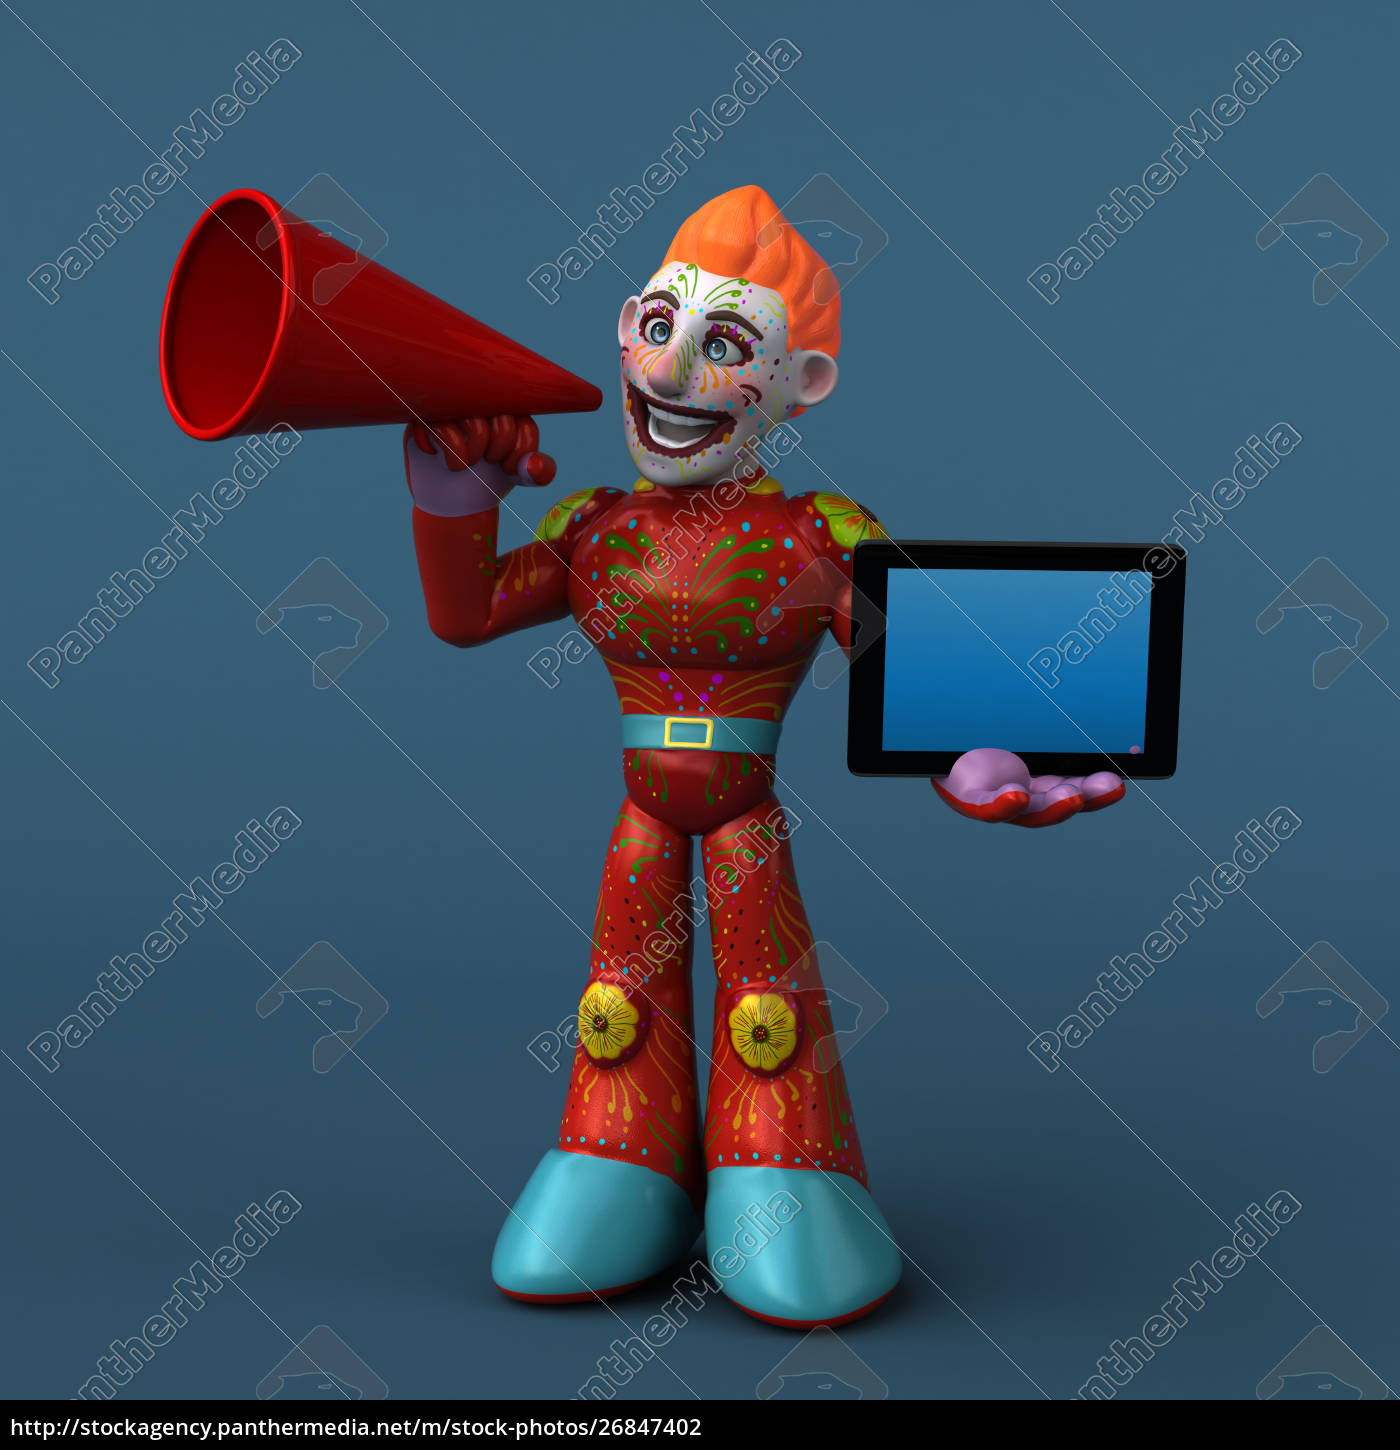 mexican, hero, -, 3d, illustration - 26847402